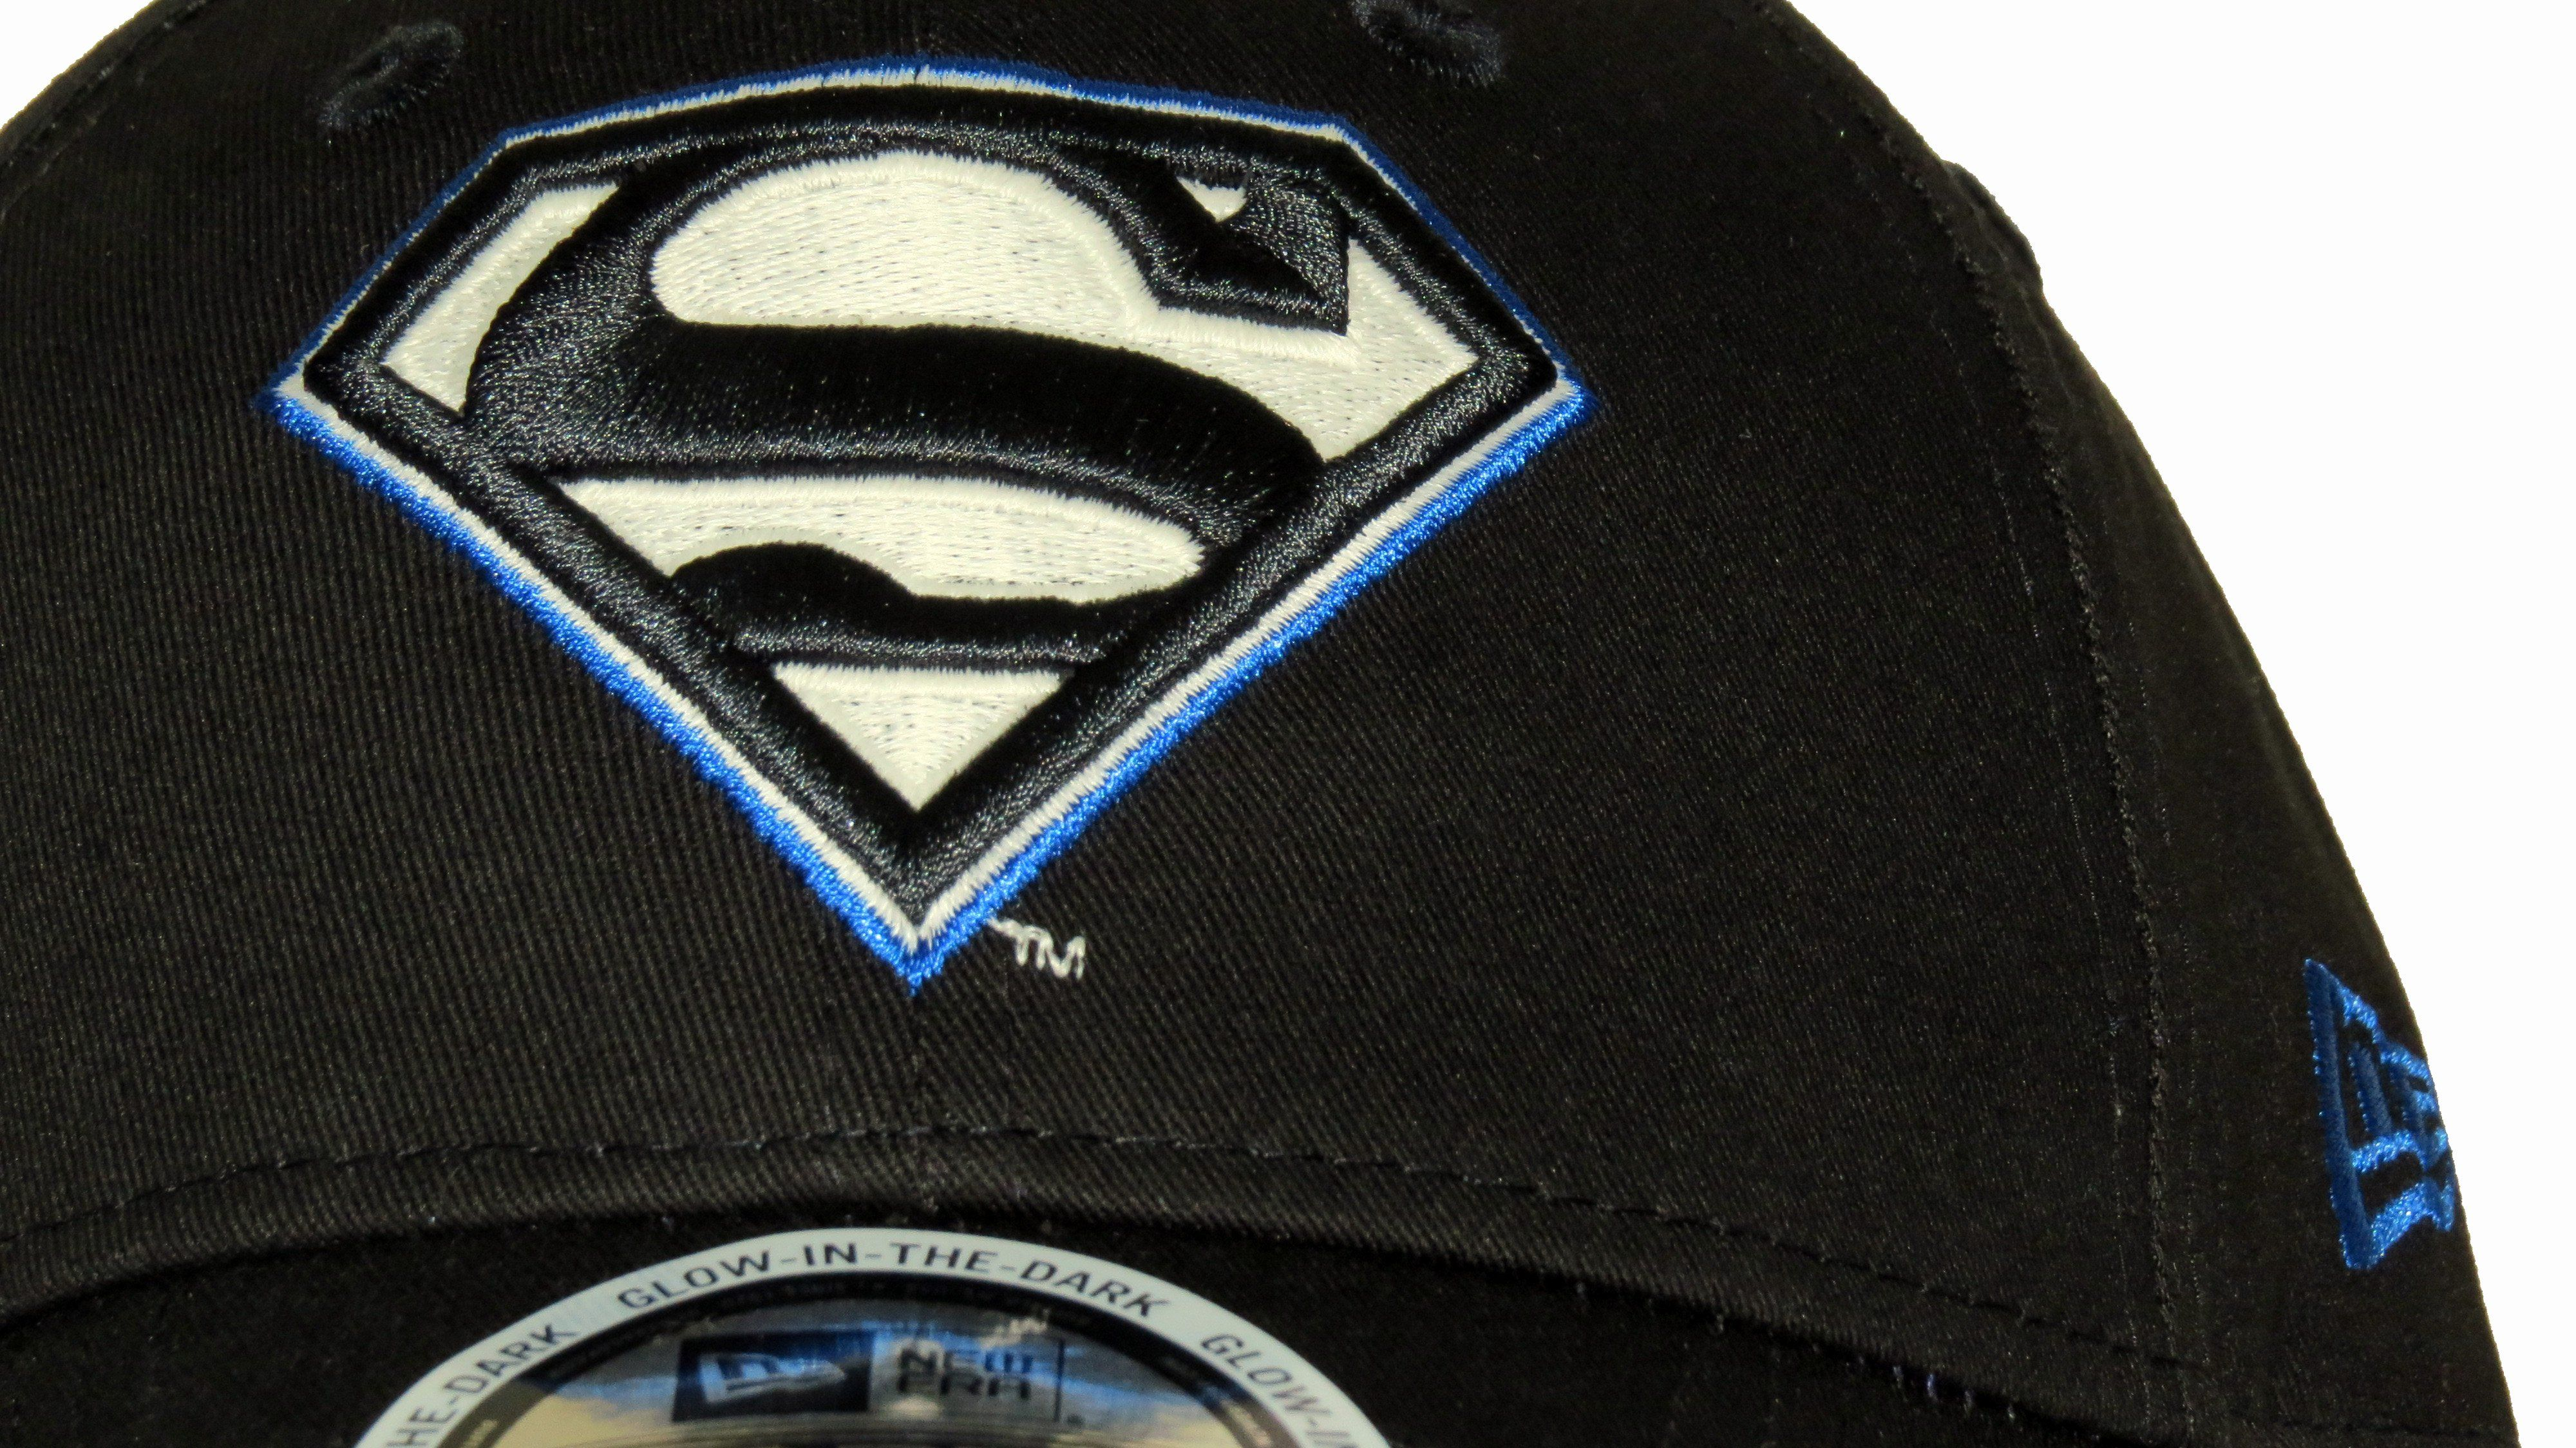 bee0ed3eab0 New Era 9Forty DC Comics Glow In The Dark Adjustable Cap. Black with the  Blue